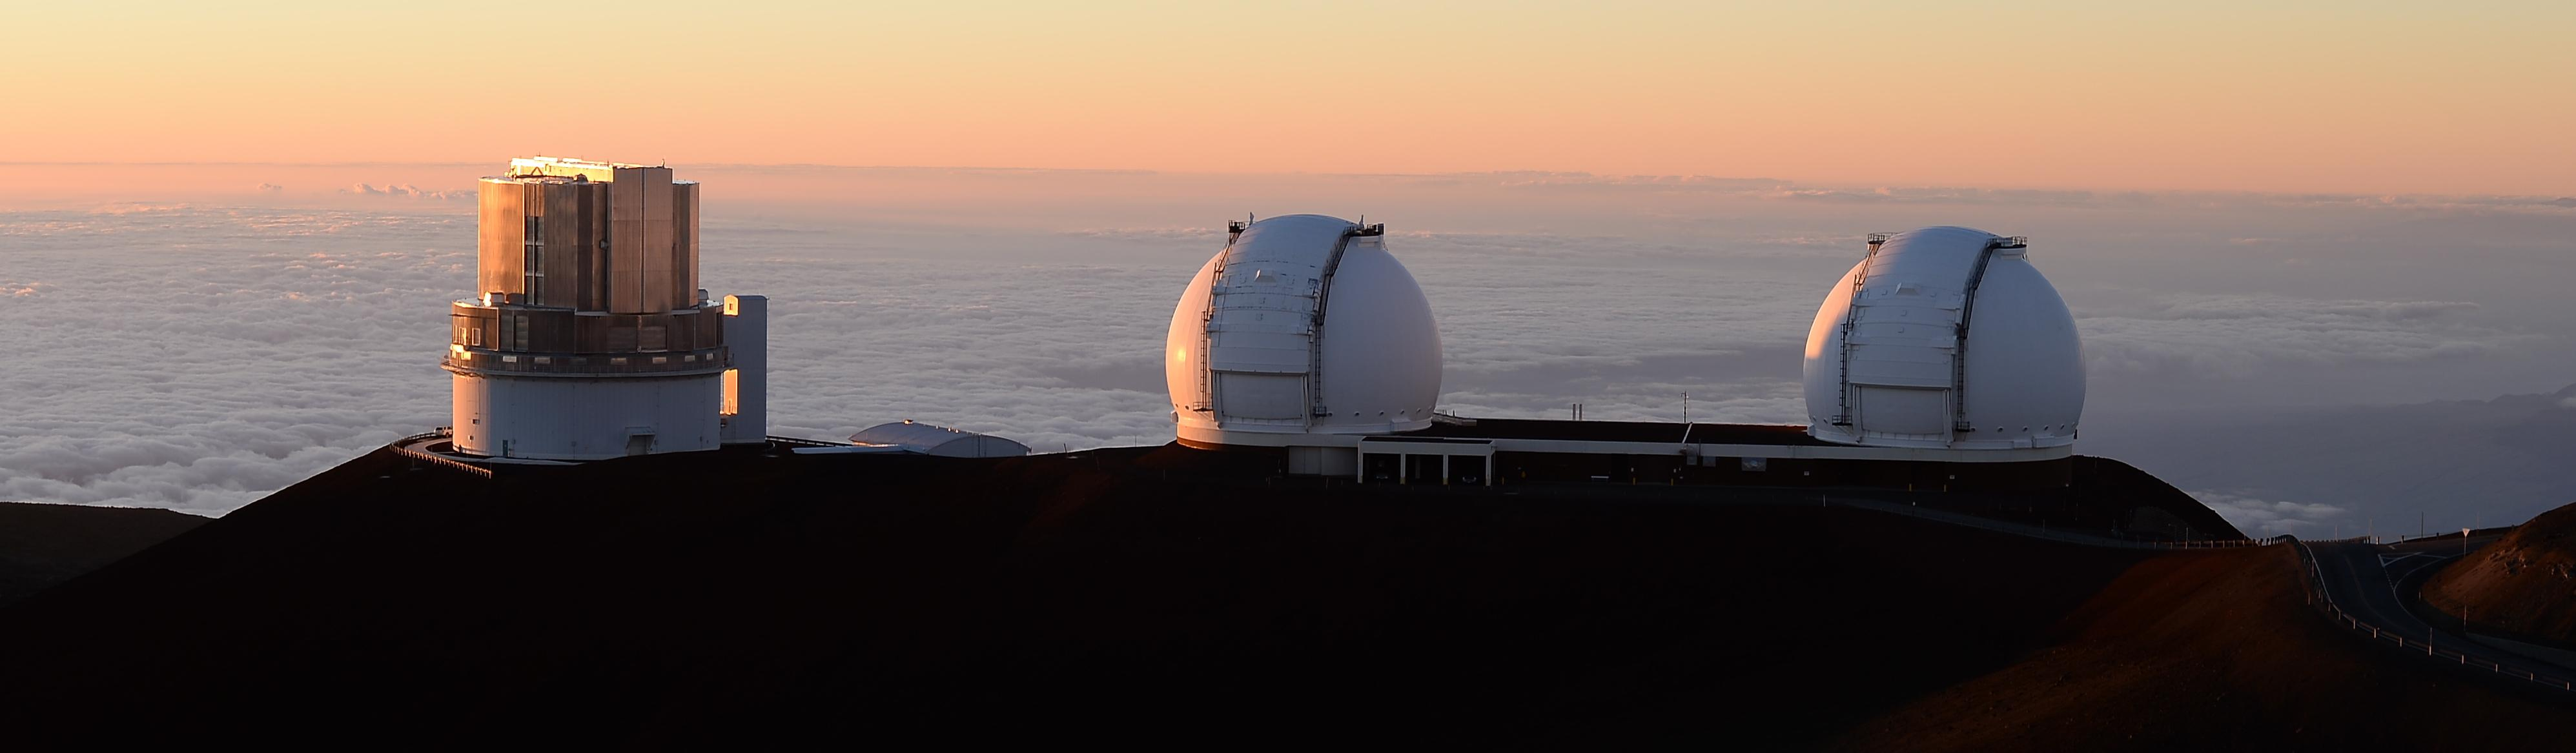 Telescopes on Maunakea Are Front-runners in the Quest for Planet 9 Figure